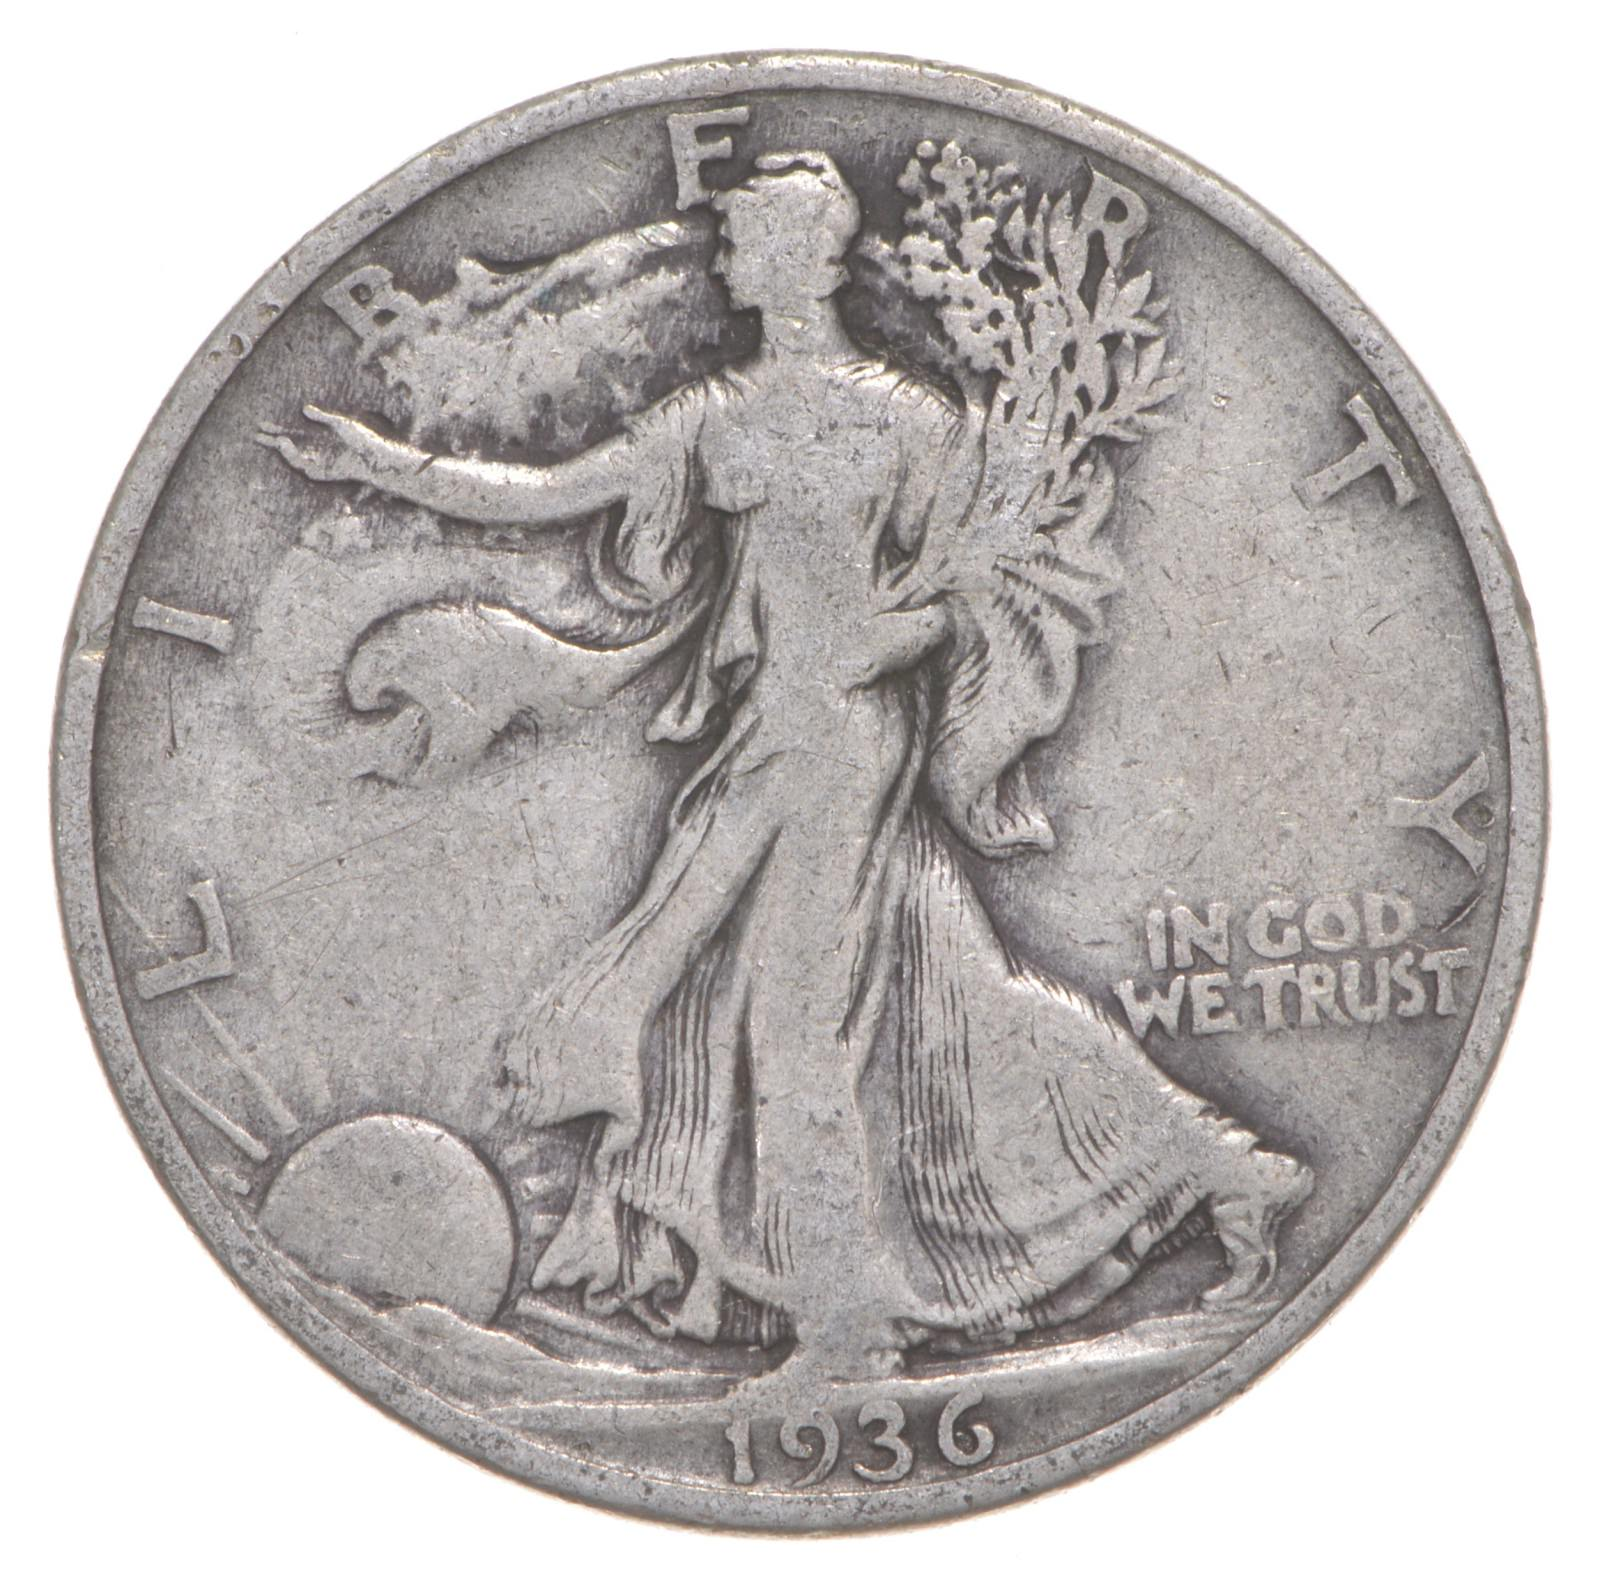 90/% Silver US Coin Very Fine or Better 1936-S Walking Liberty Half Dollar